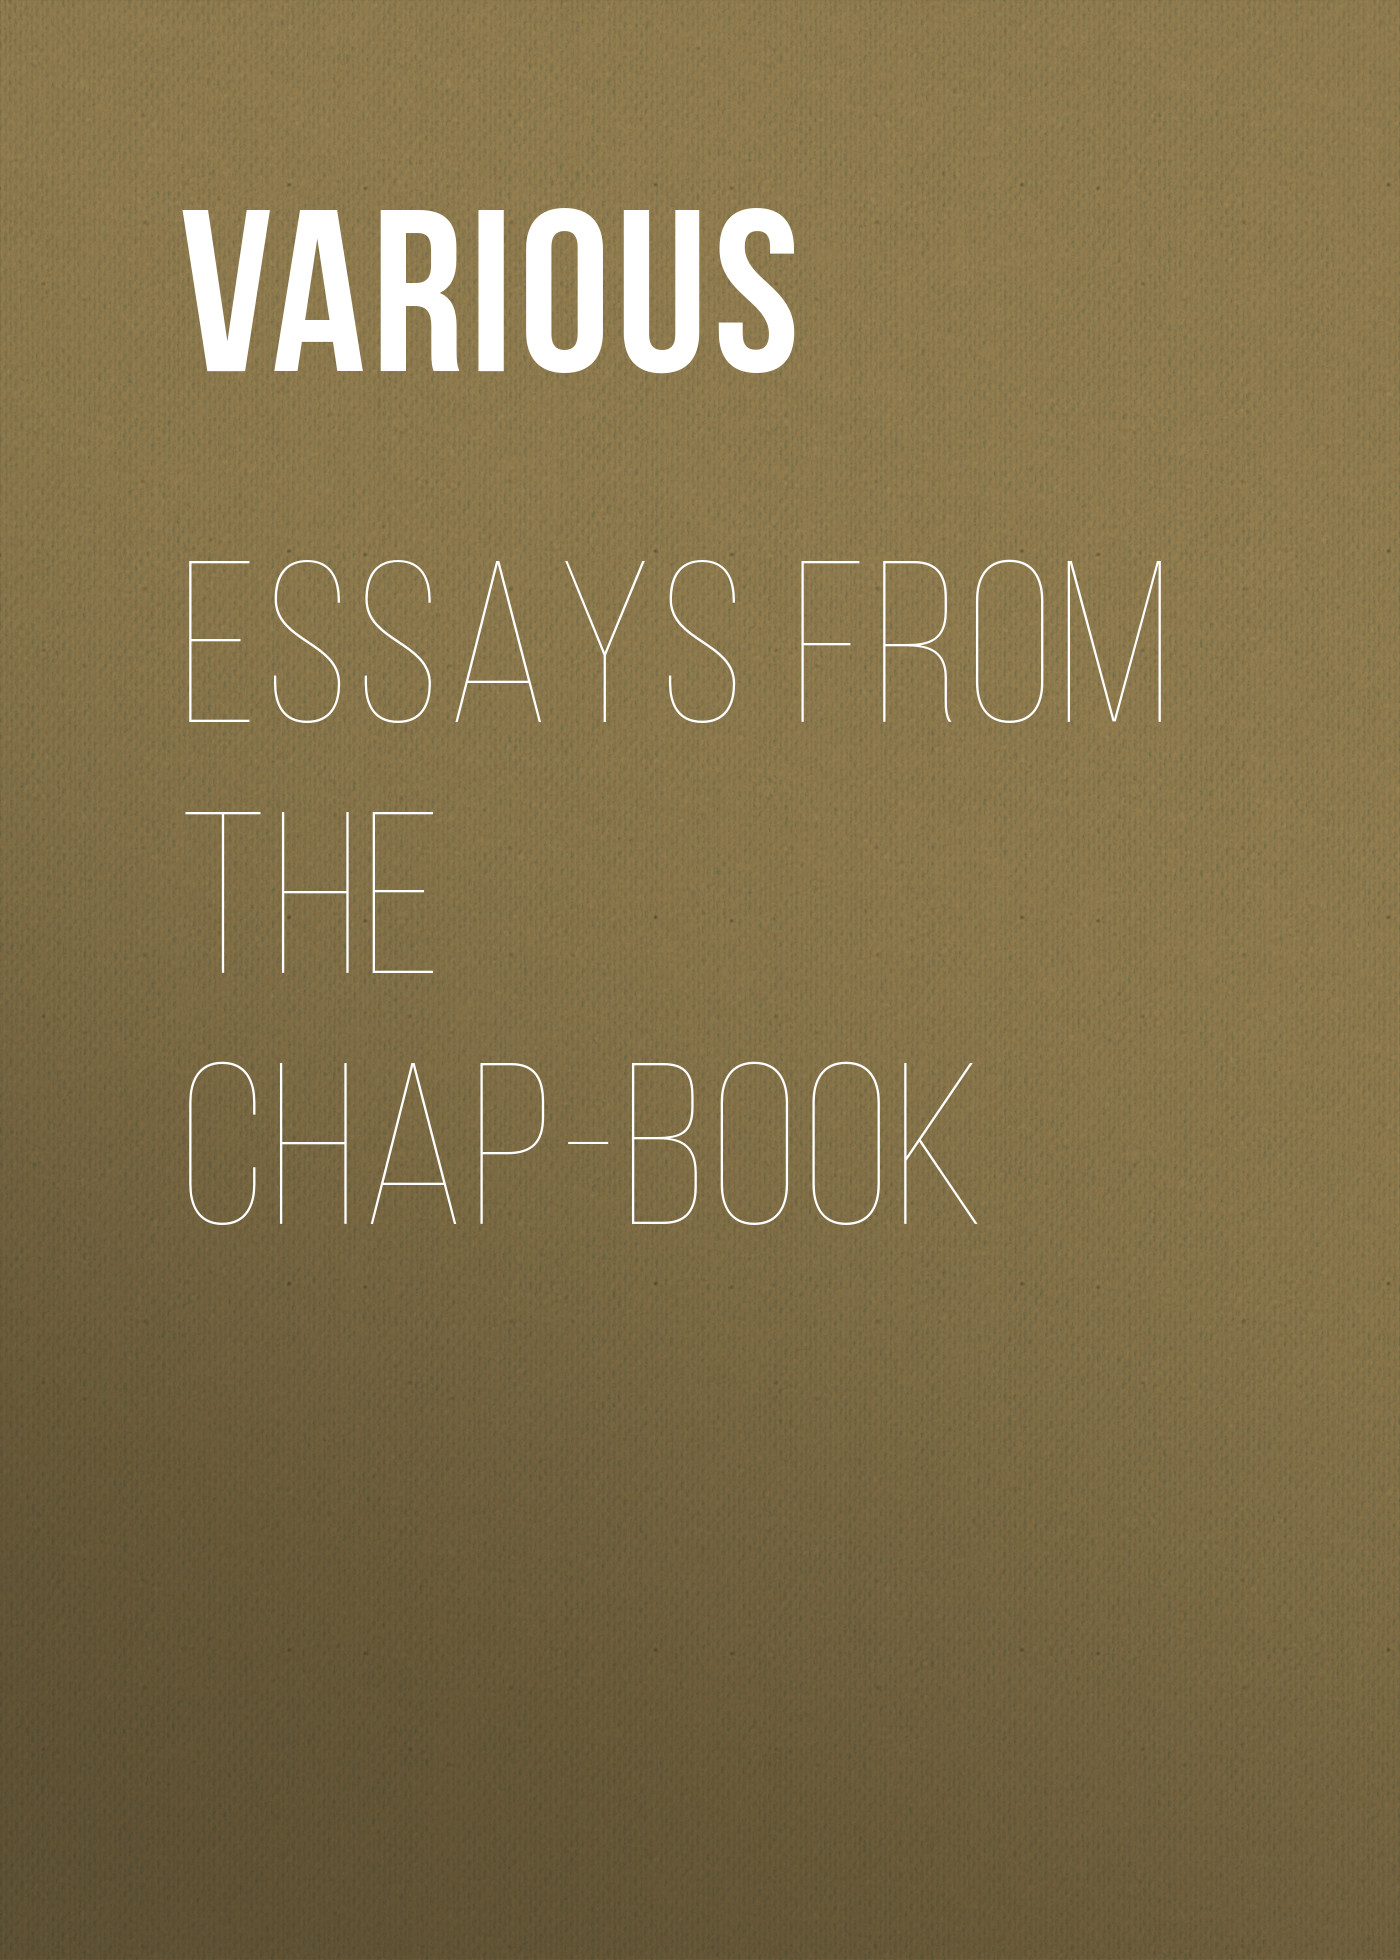 Various Essays from the Chap-Book